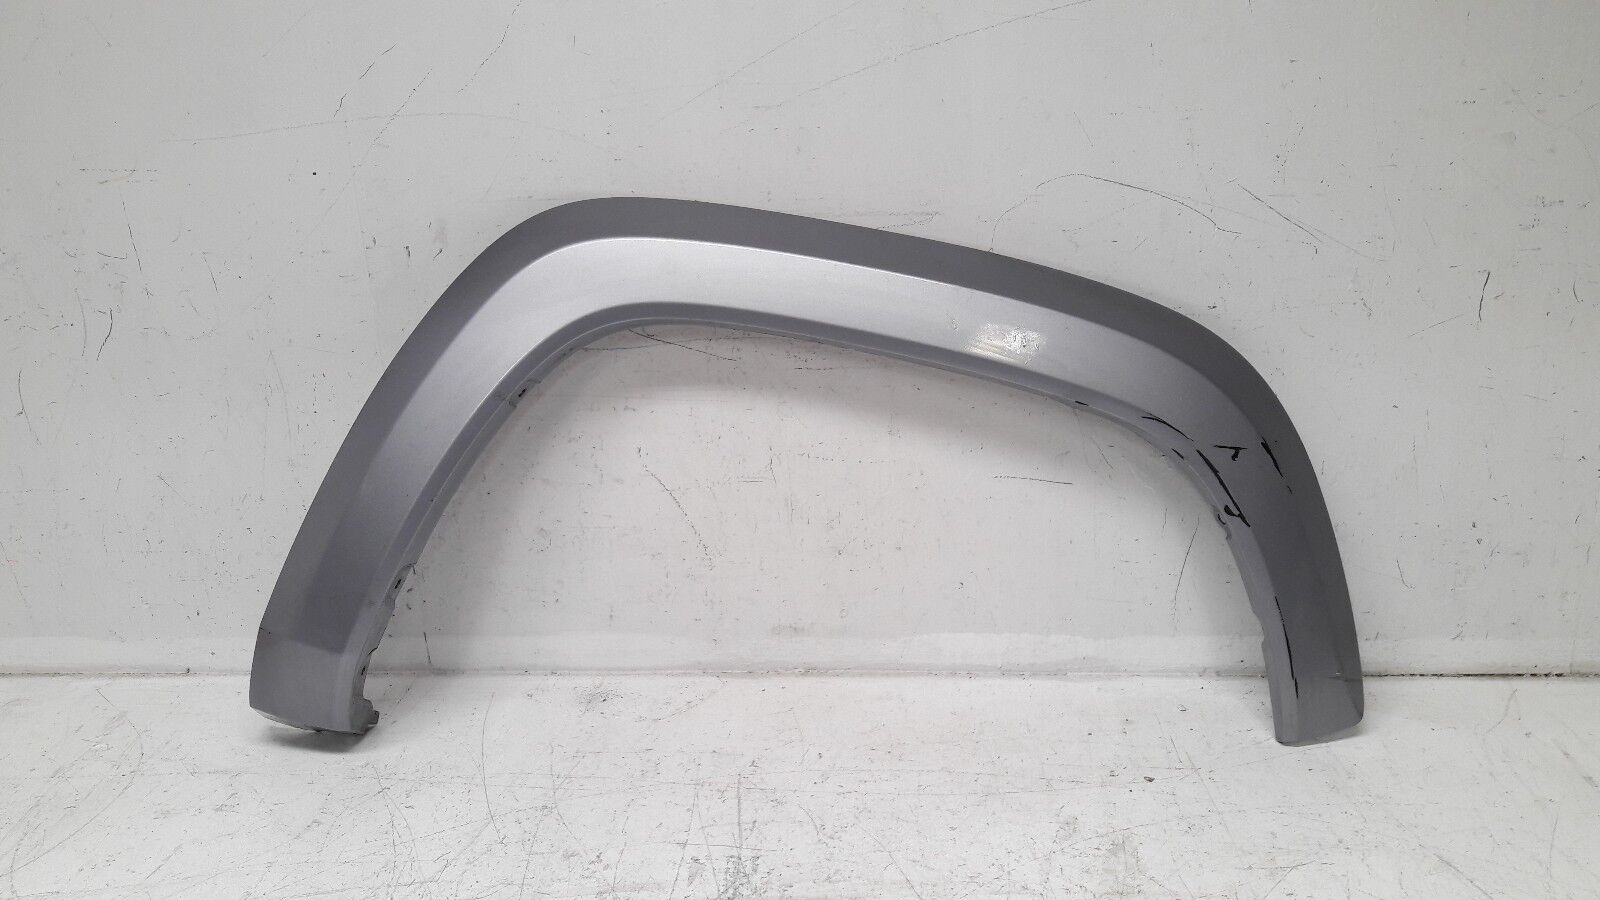 Used Toyota Tacoma Fenders For Sale 2004 Fender Flares 2016 2017 Front Right Flare Silver 75871 04060 3215